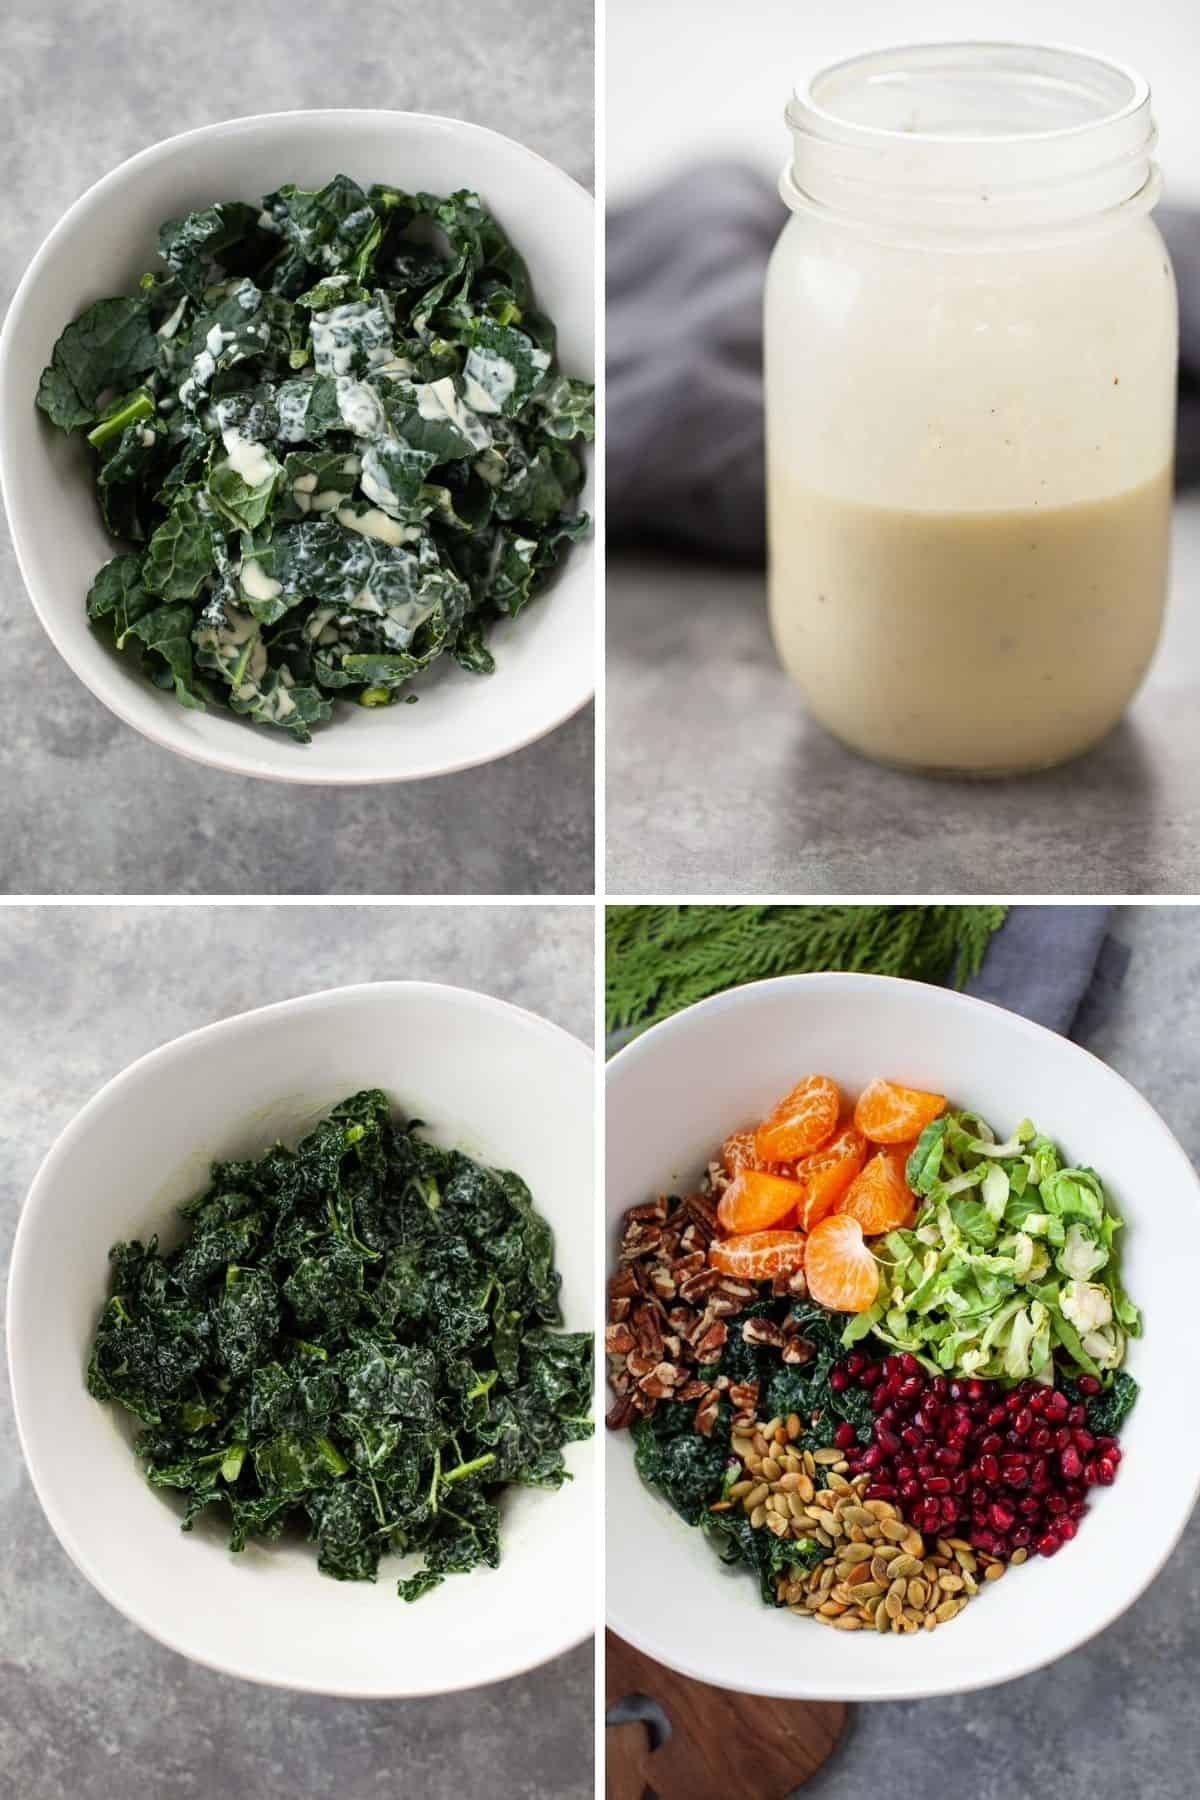 three photos showing bowl of kale salad and another photo showing a mason jar filled with Greek dressing